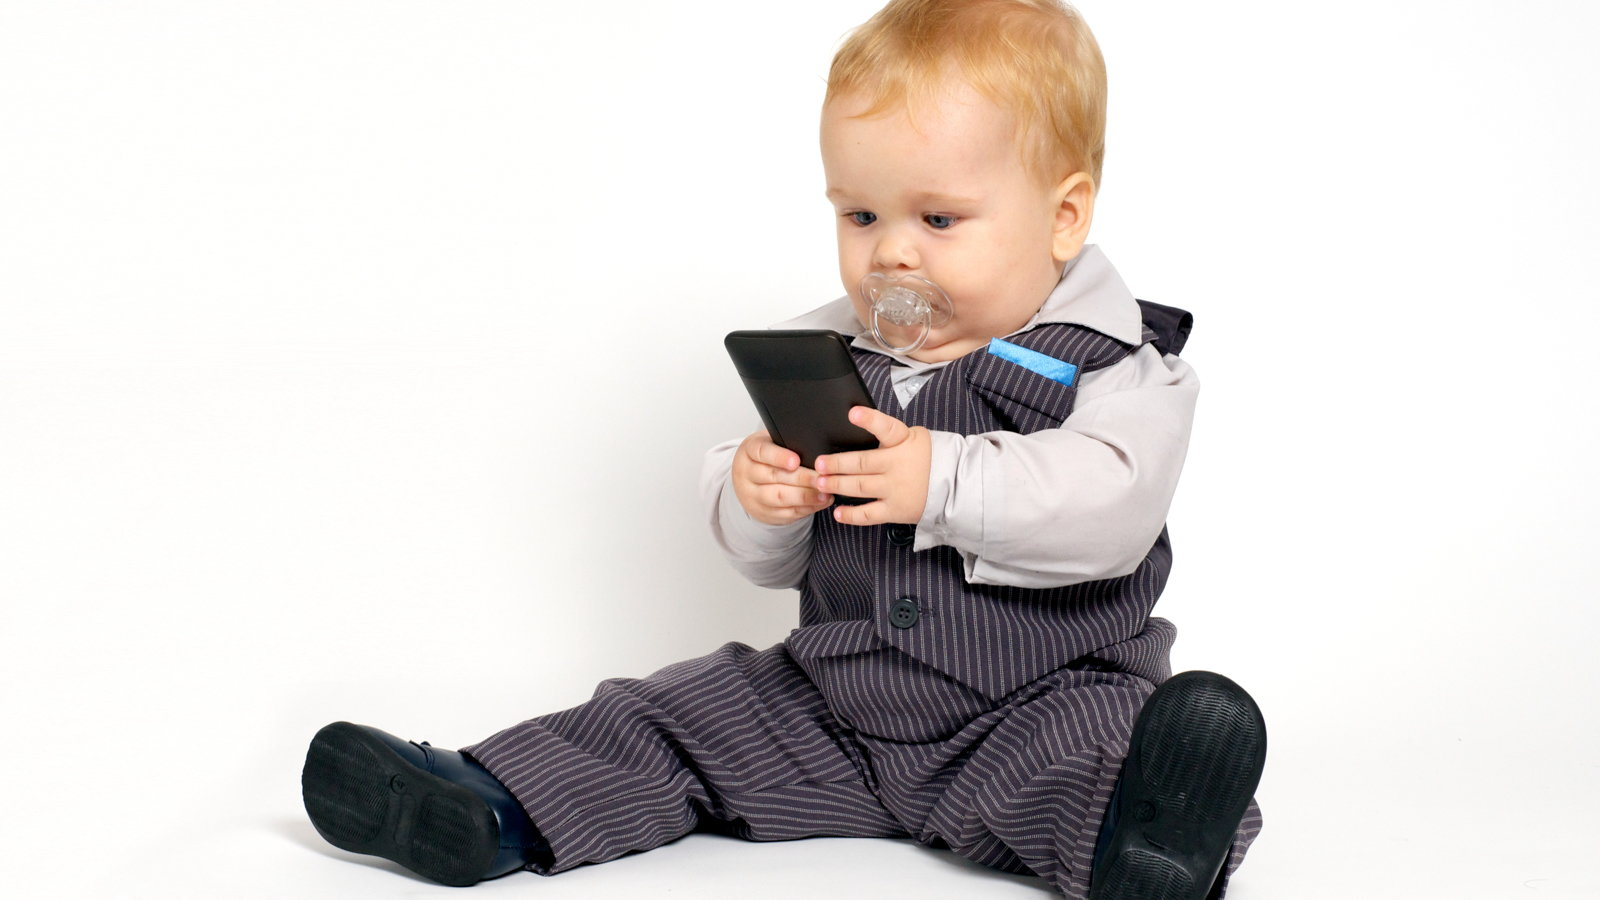 baby playing on smartphone